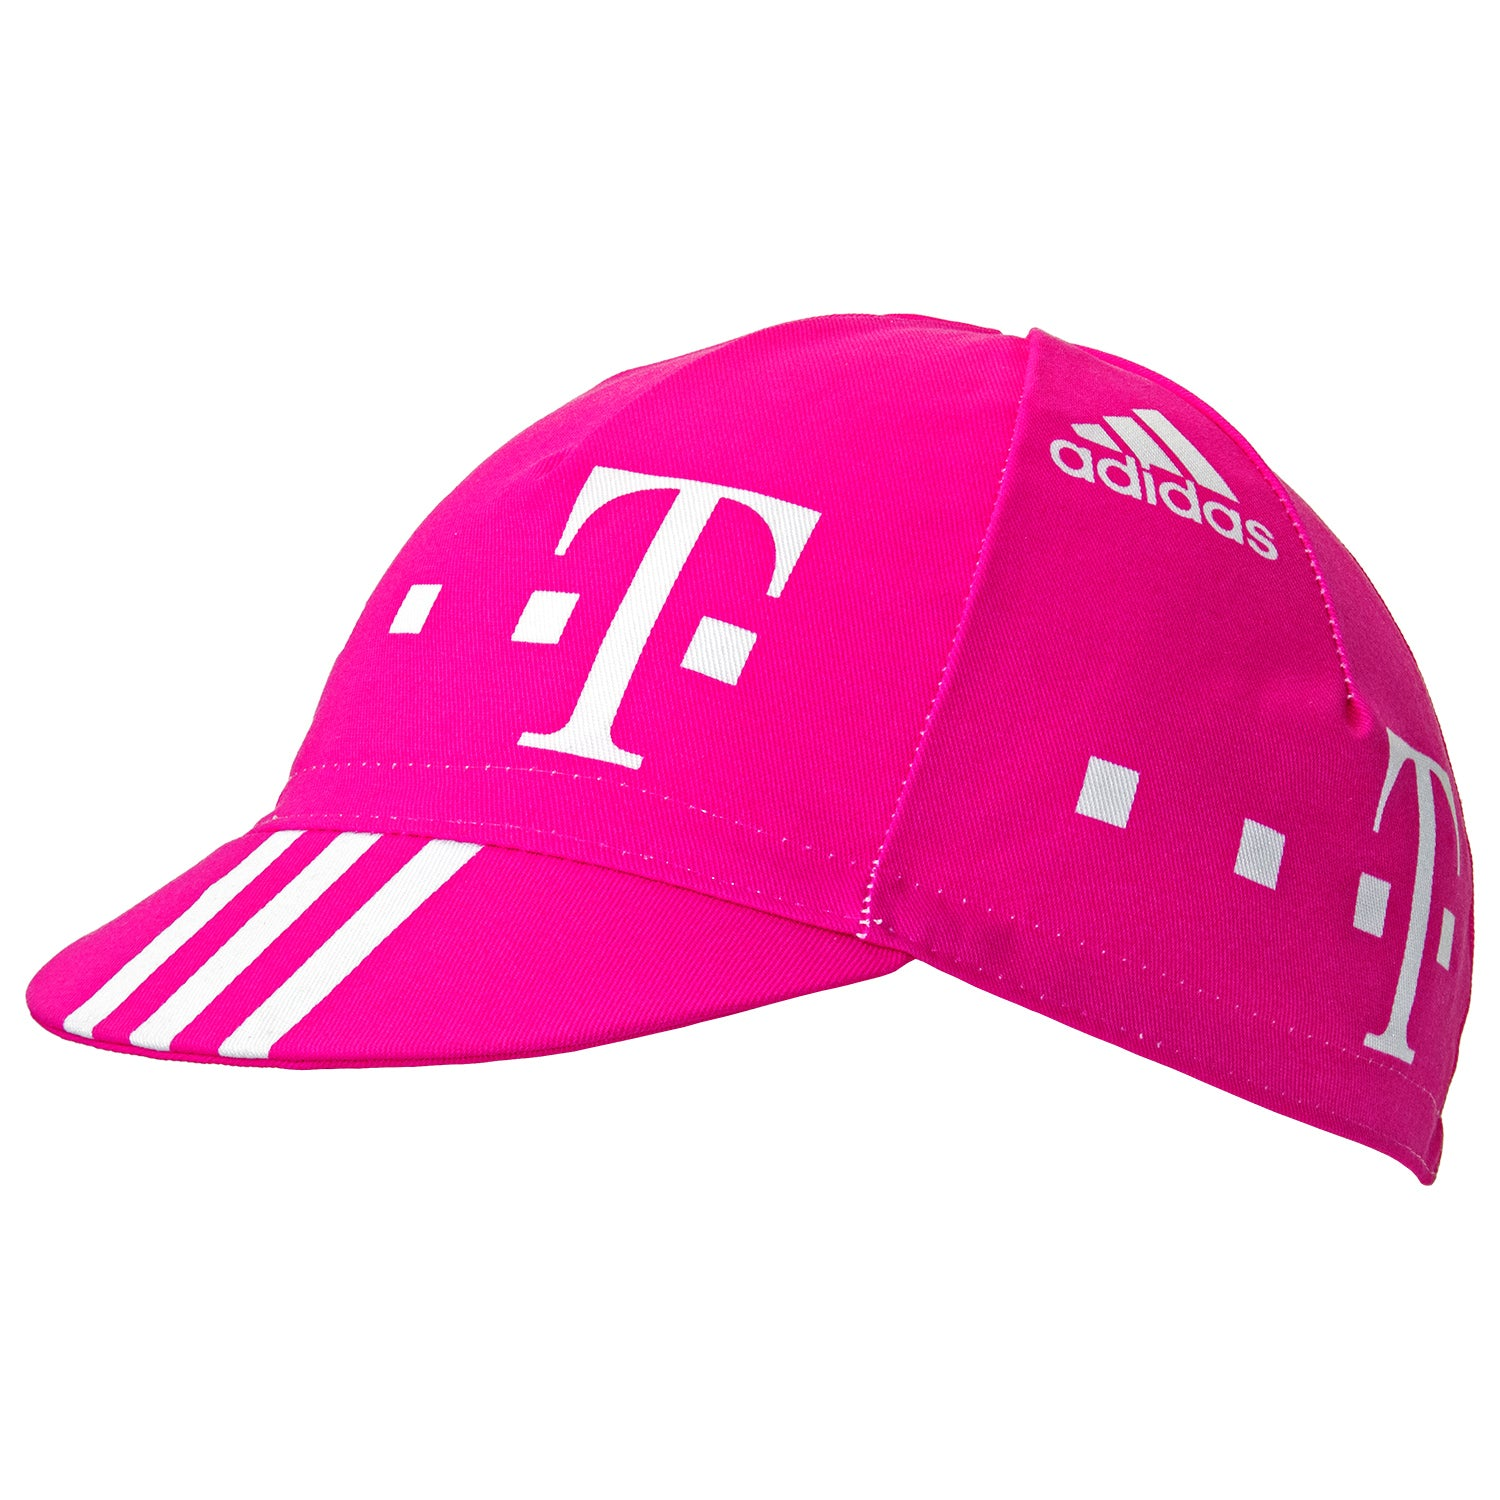 T-Mobile Adidas Pro Team Cotton Cycling Cap